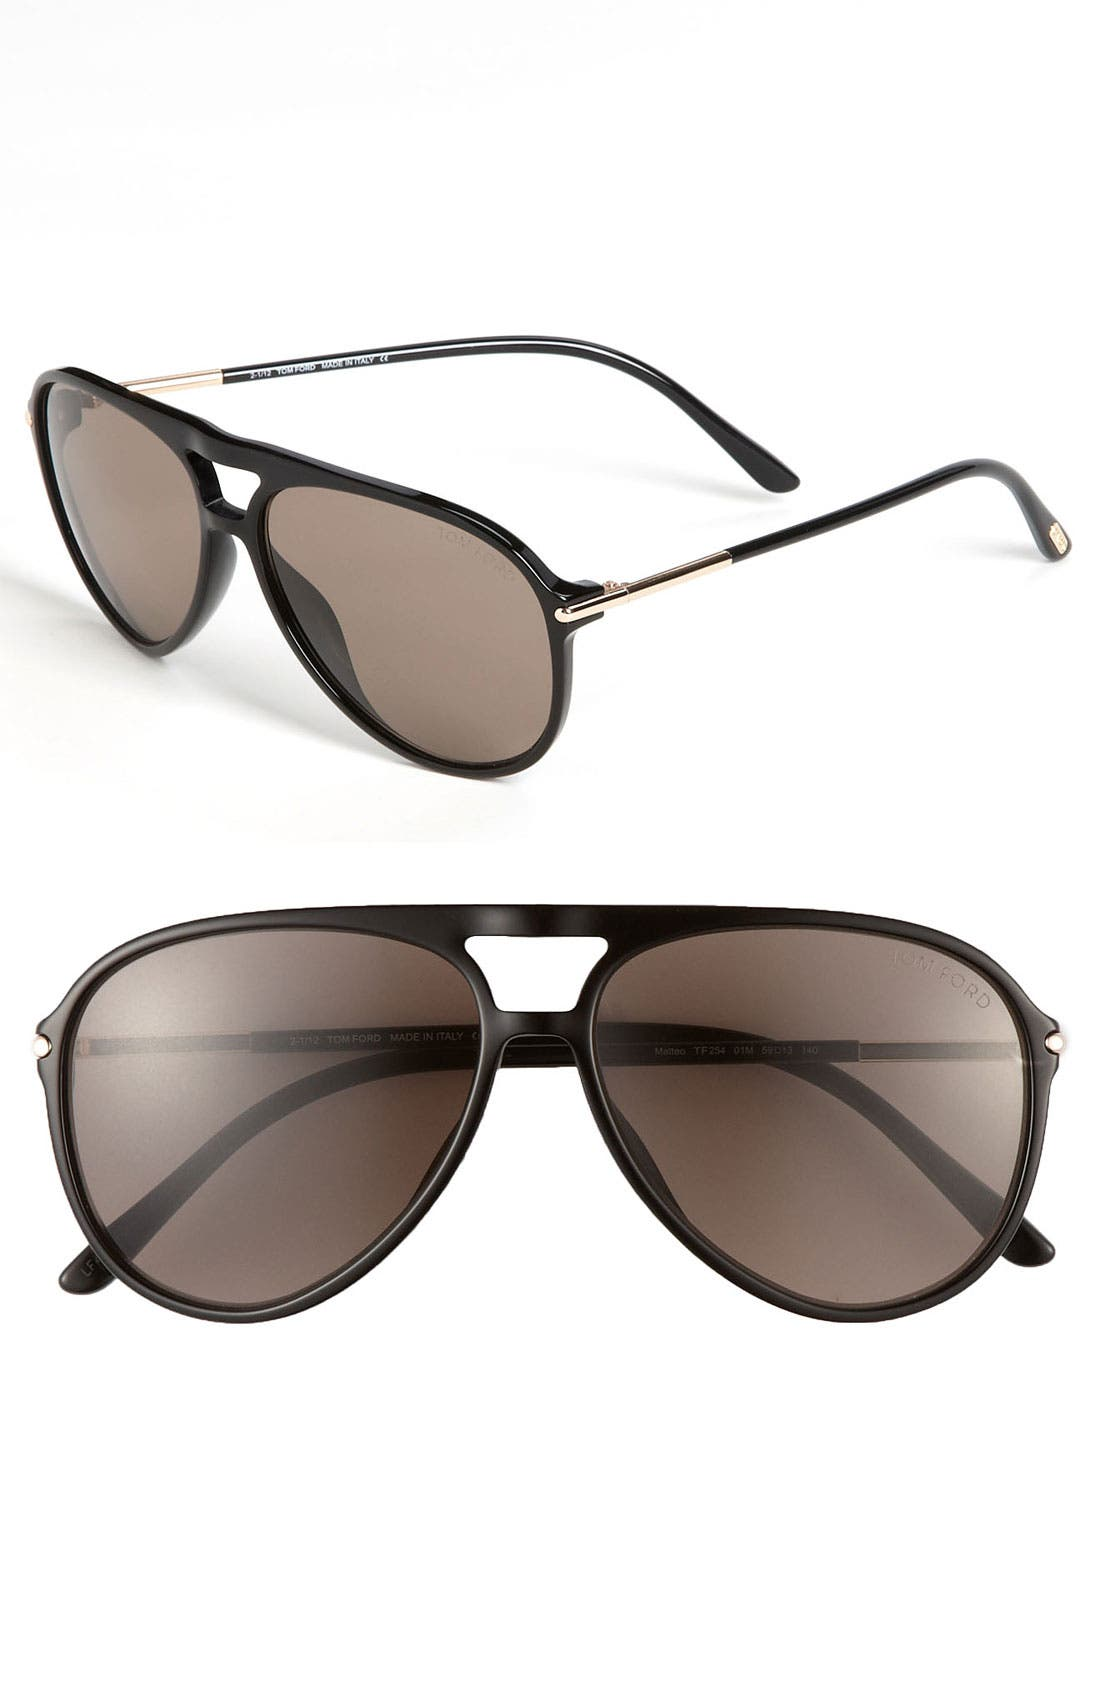 Main Image - Tom Ford 59mm Aviator Sunglasses